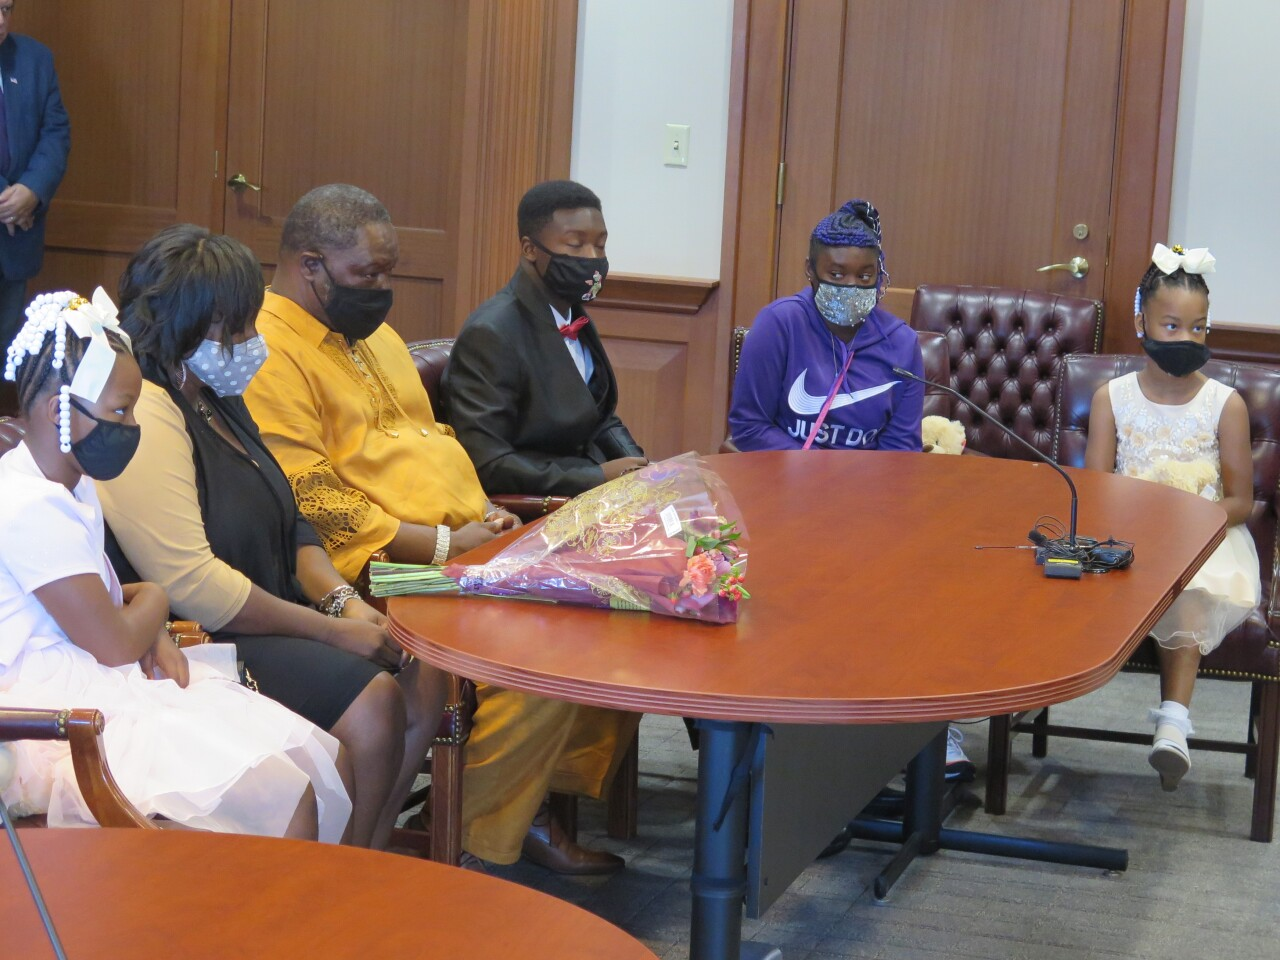 """Karen and Tobias Thompson, second and third from left, in the courtroom with their adoptive children. The younger twin girls are wearing their Easter dresses. The older twin boy is wearing a black jack, red tie and dress shirt, and the older twin girl is wearing a purple Nike sweatshirt that says """"Just do it."""""""